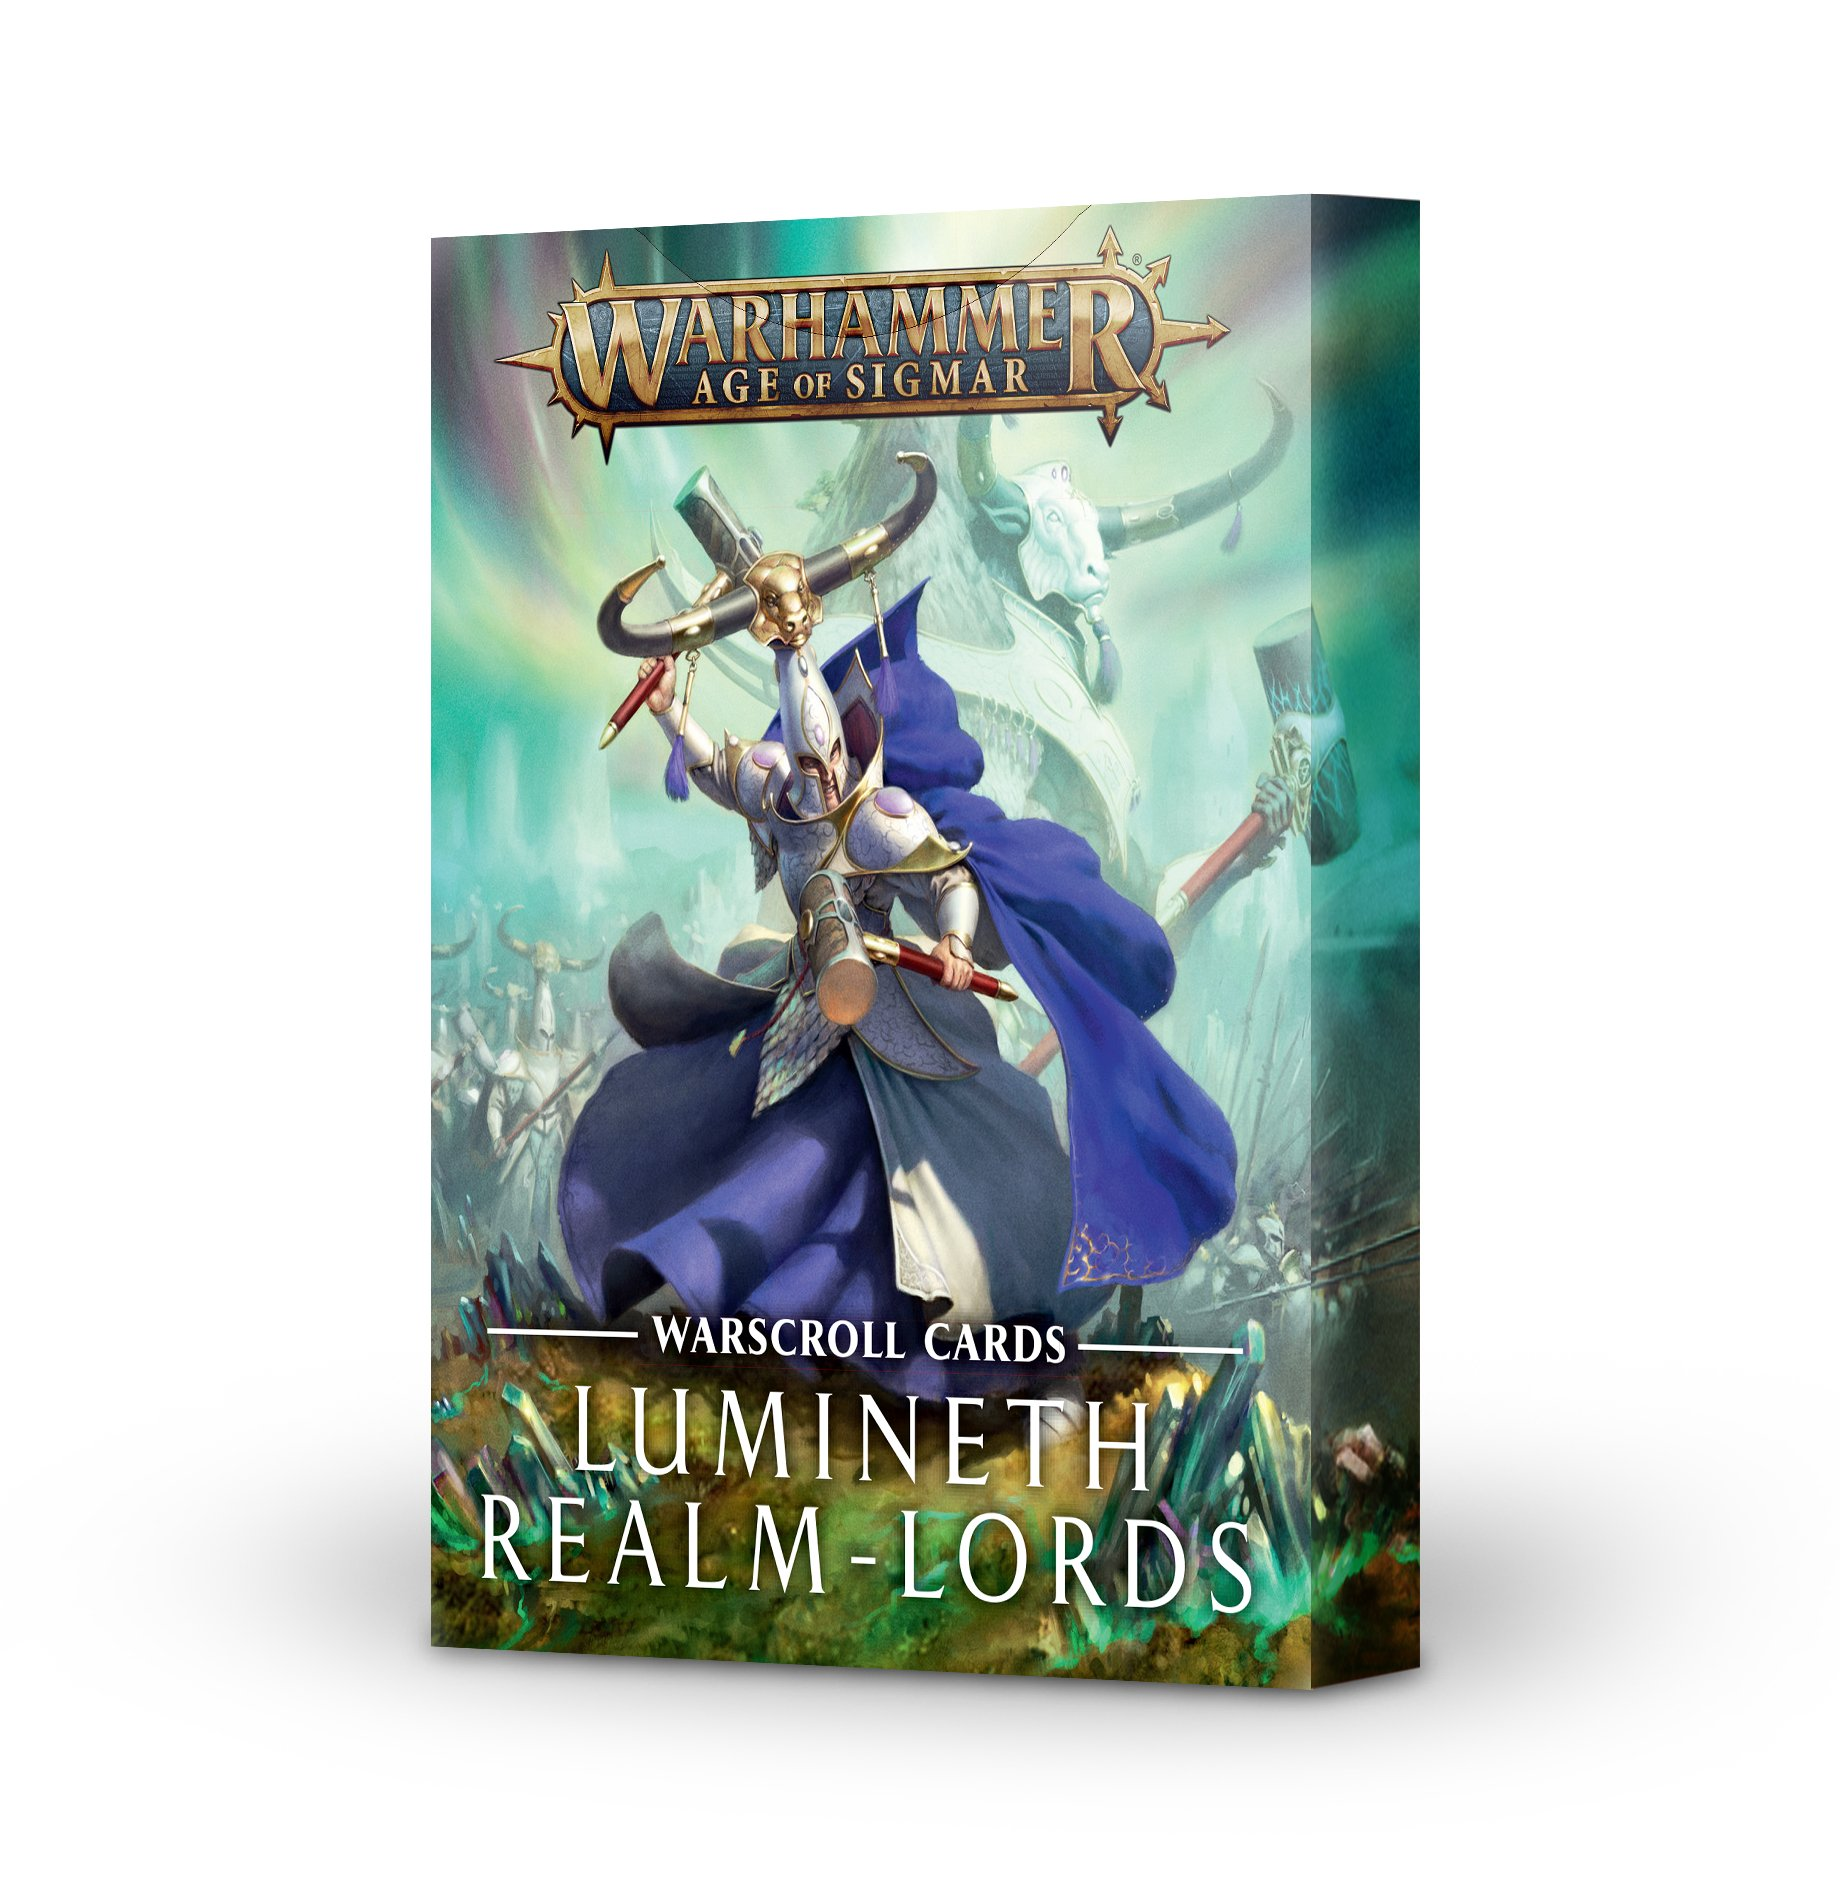 Warhammer Age of Sigmar: Warscroll Cards: Lumineth Realm-lords